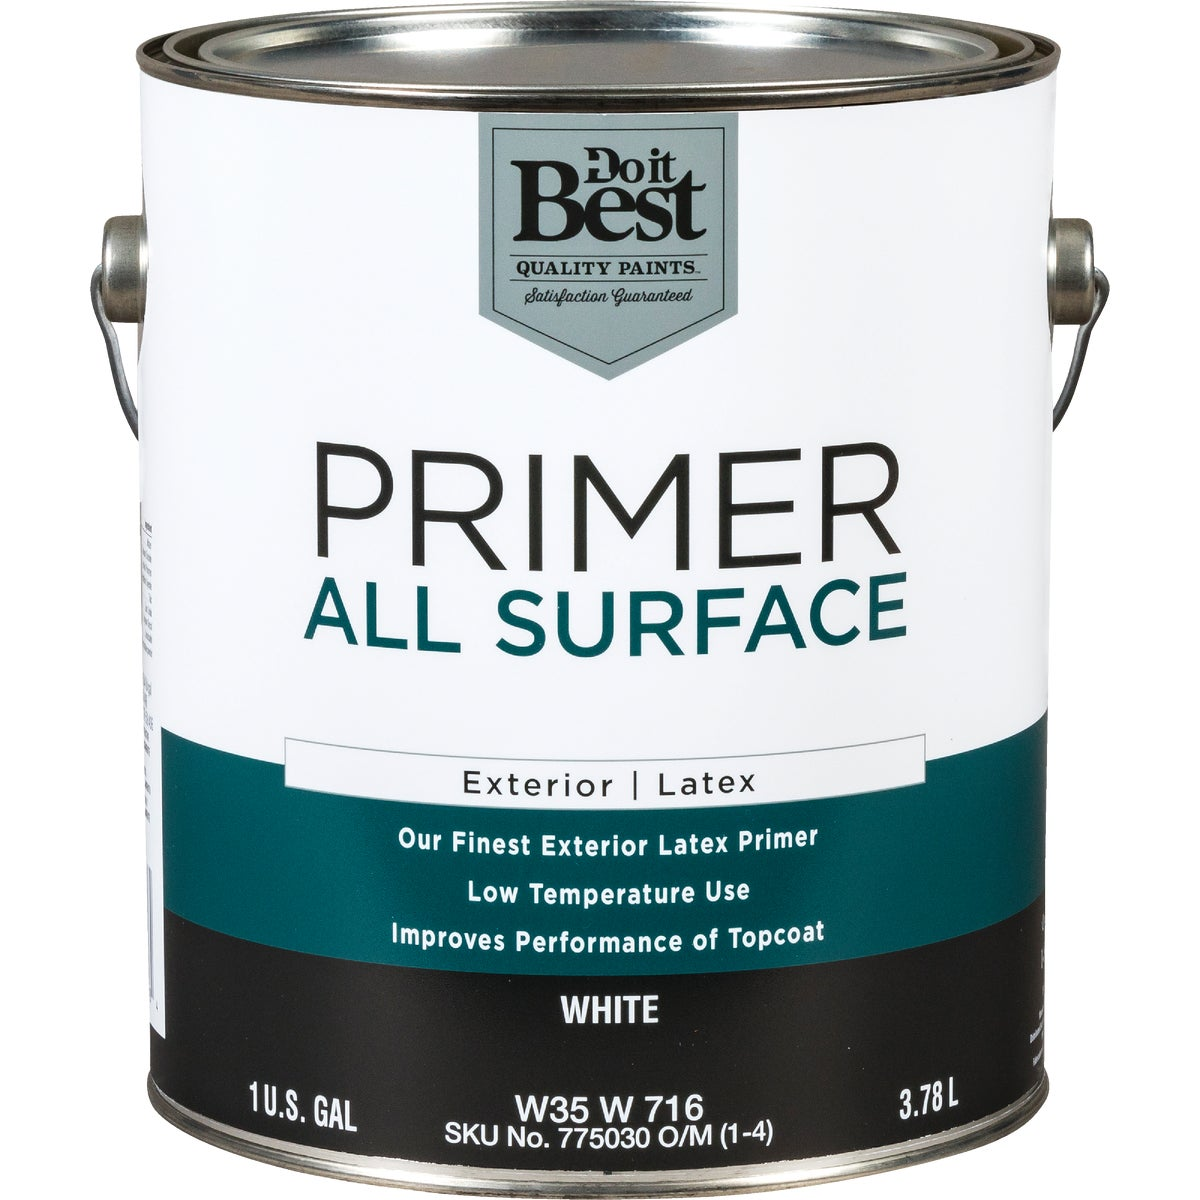 EXT WHITE LATEX PRIMER